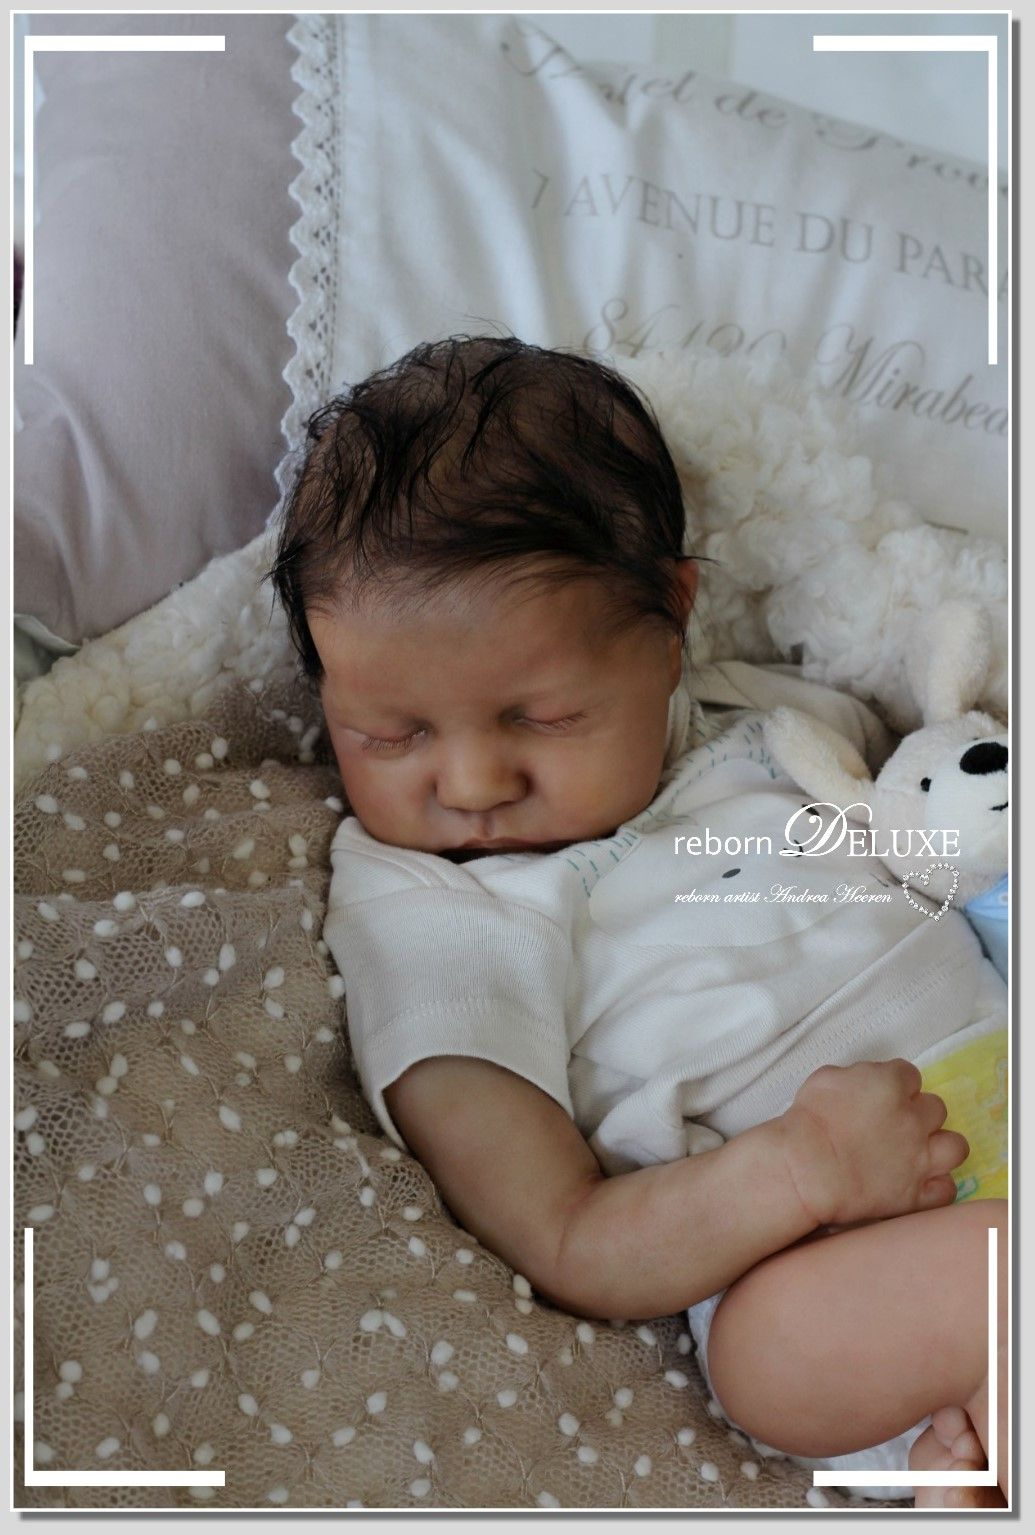 New Levi By Bonnie Brown Www Reborn Deluxe Com Biracial Newborn Baby Doll Sosweet Puppe Sammler Kunst Art Newborn Newborn Baby Dolls Reborn Babies